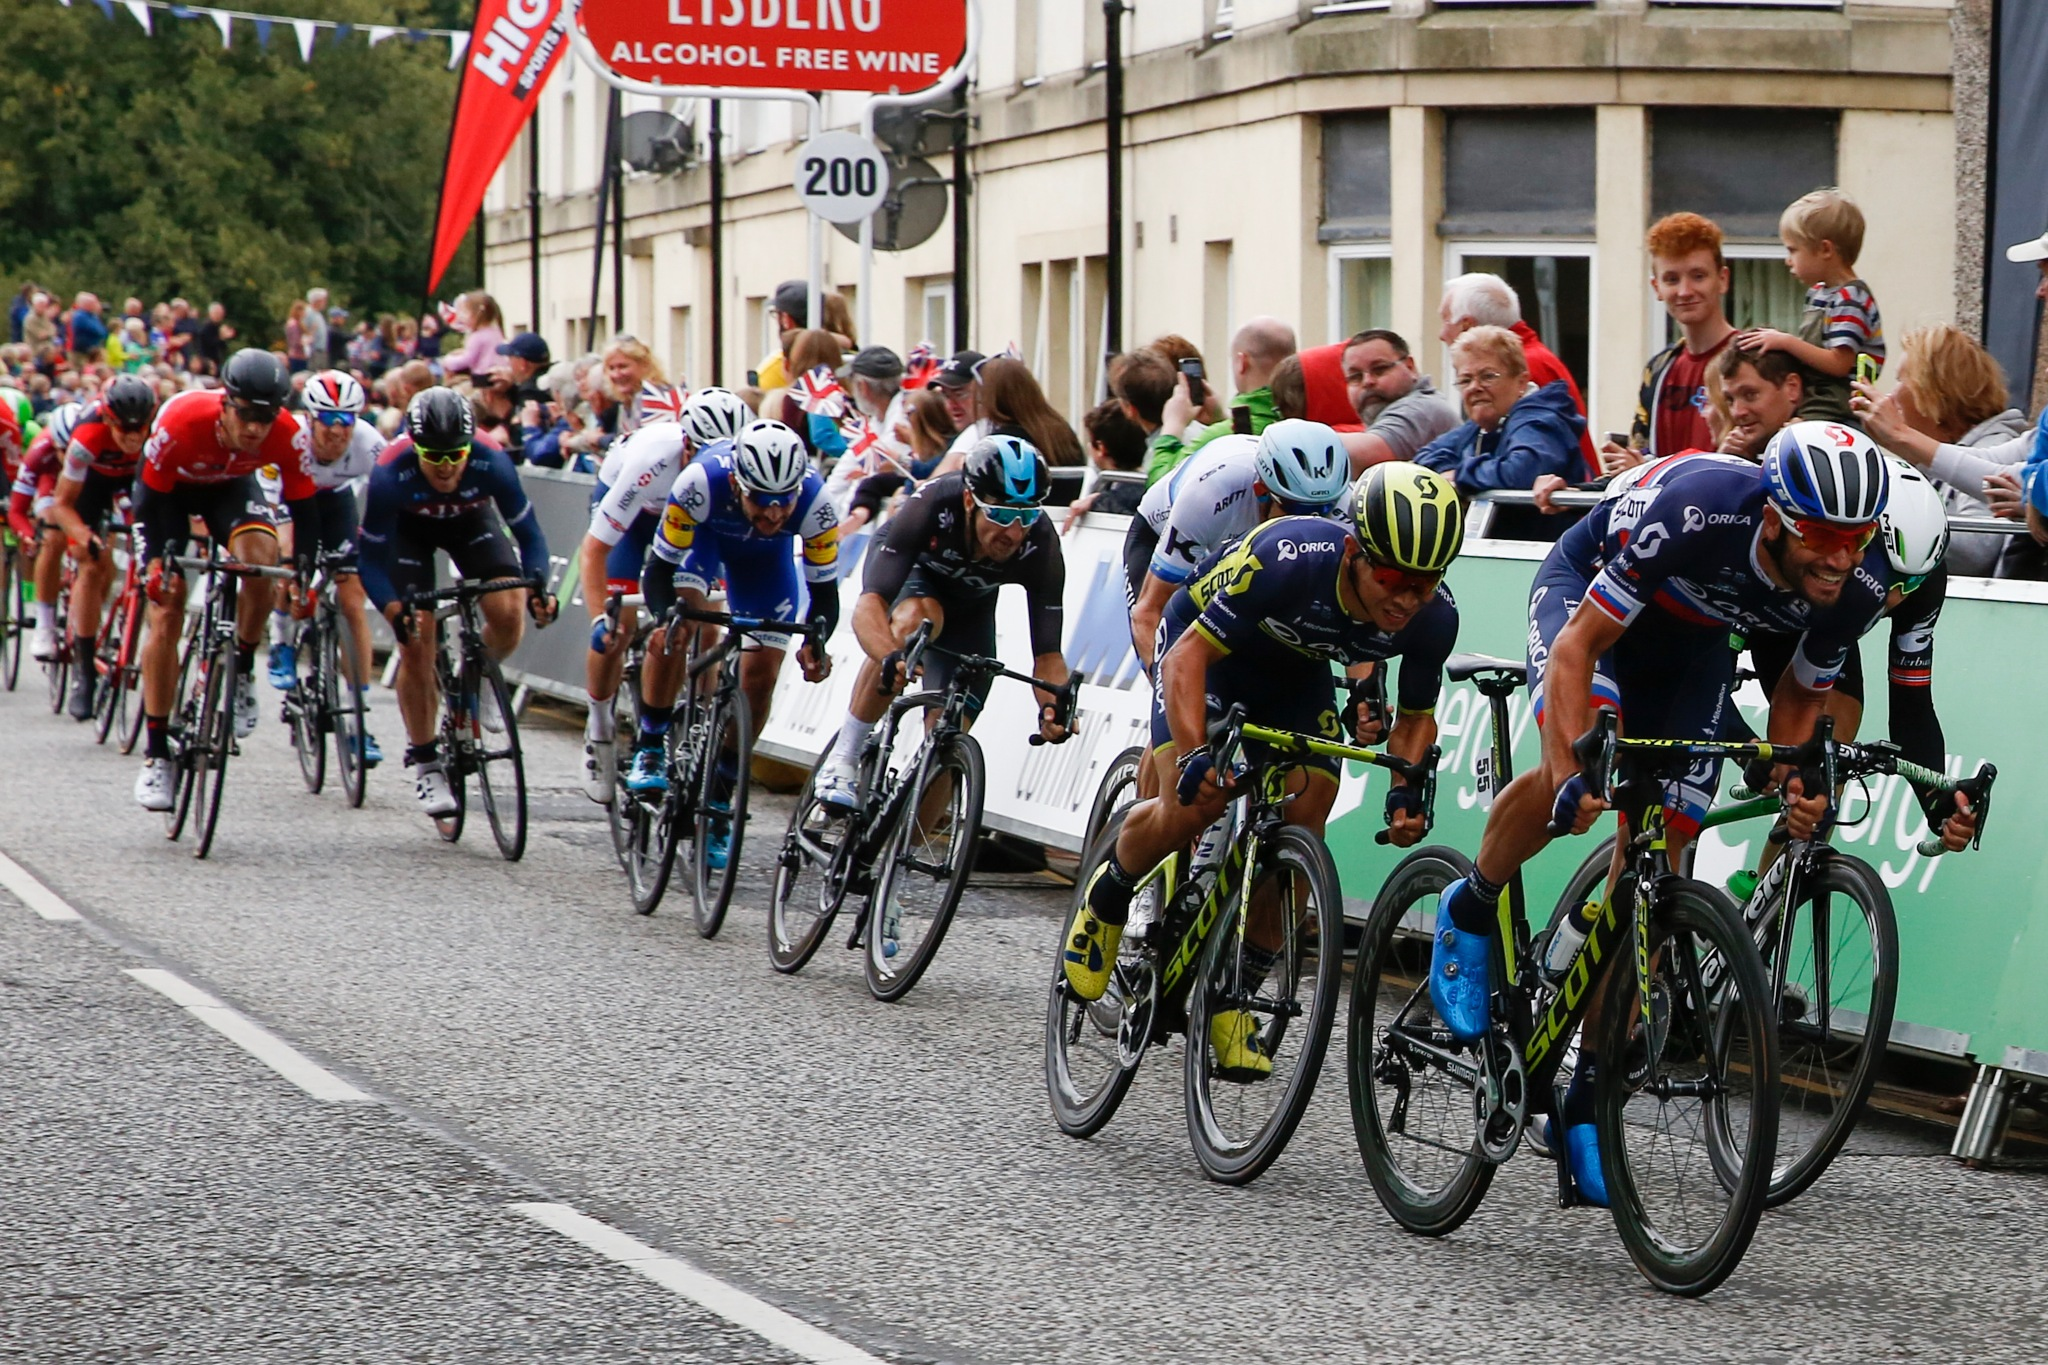 Tour of Britain 1 by Paul1964